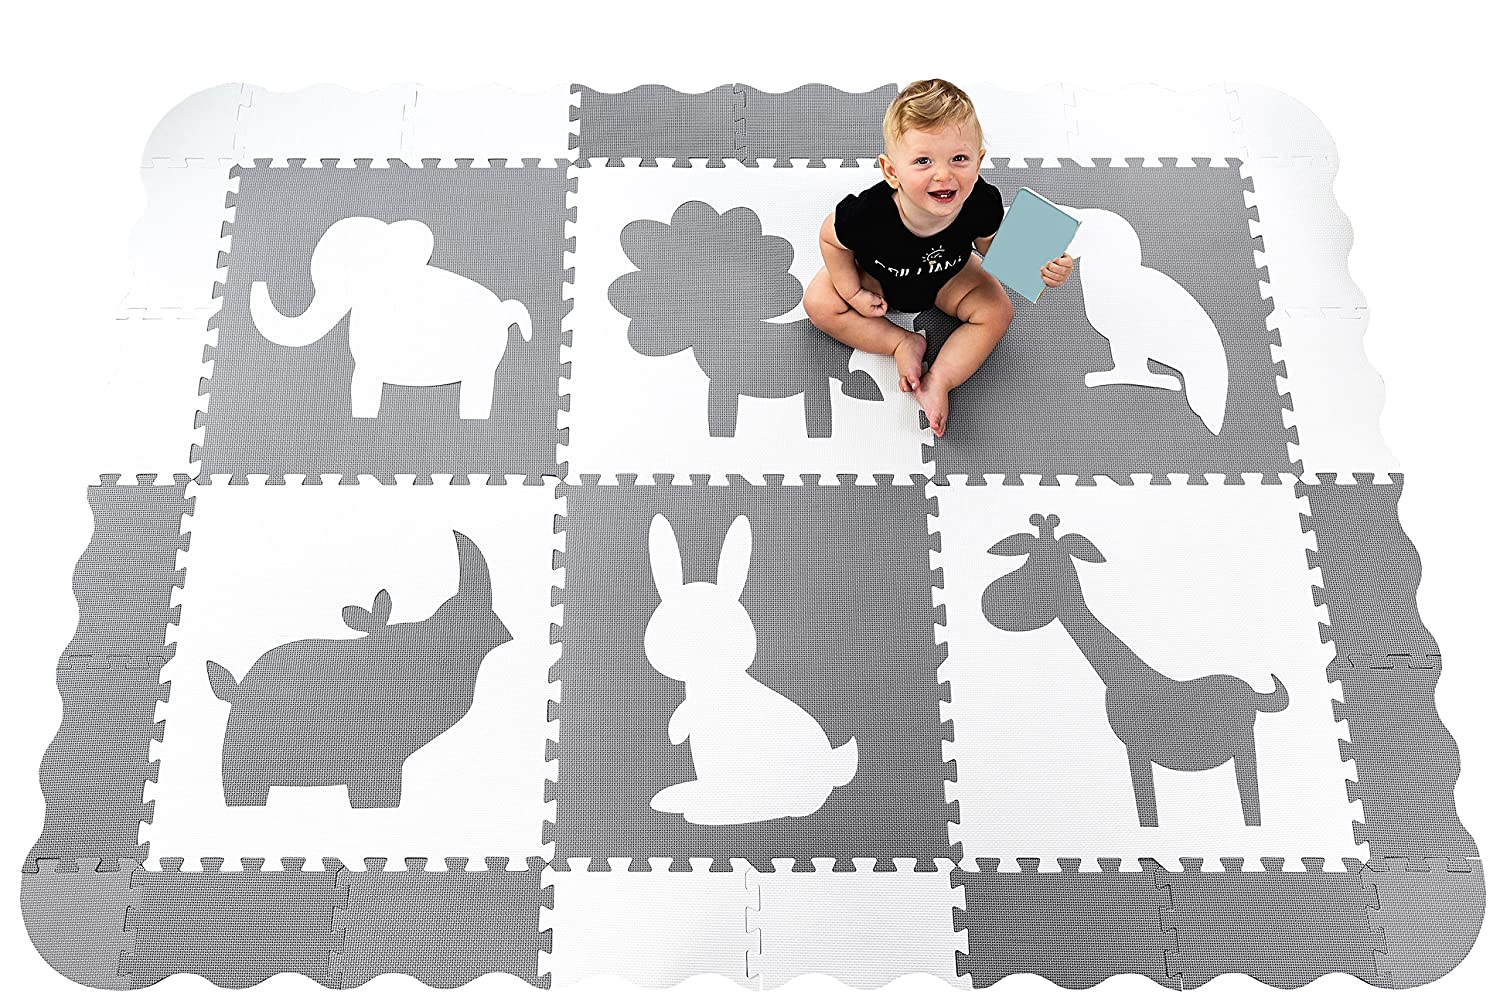 Large (5x7') Baby Play Mat with Interlocking Foam Floor Tiles. Neutral, Non Toxic Baby Playmat for Nursery, Playroom or Living Room (Grey and White) Wee Giggles